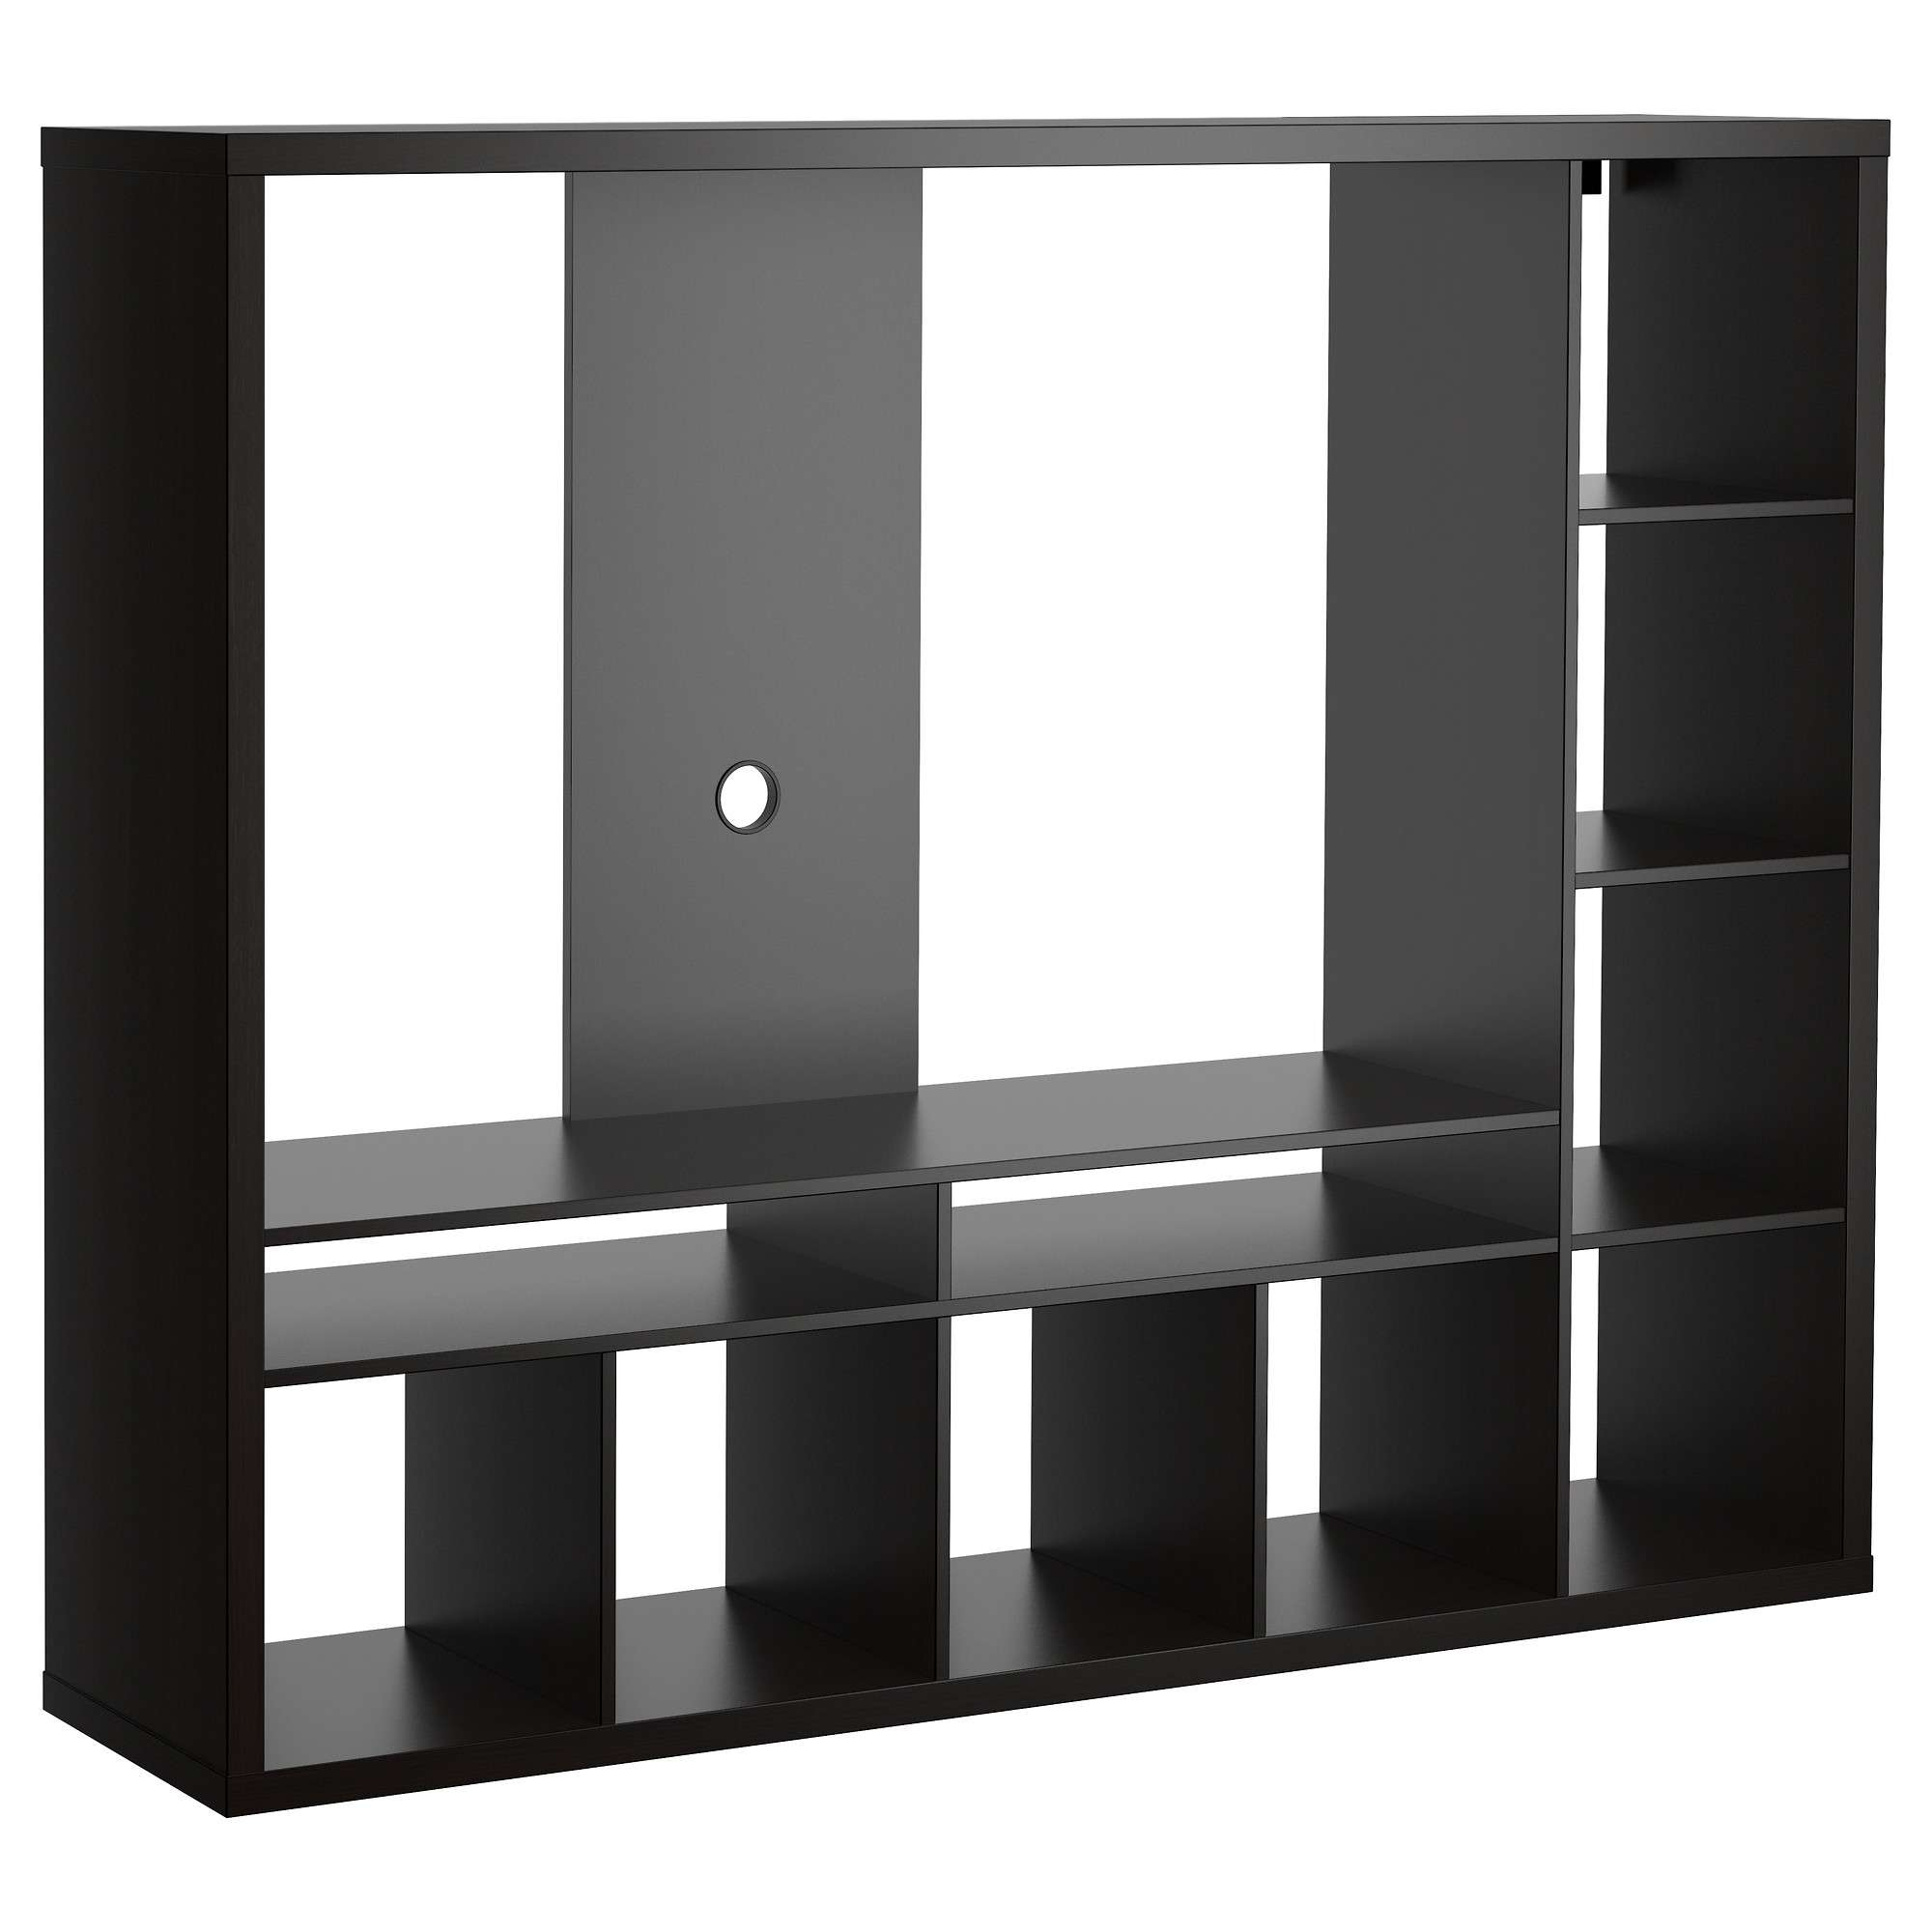 Lappland Tv Storage Unit – Black Brown – Ikea Intended For Tv Stands At Ikea (View 4 of 15)